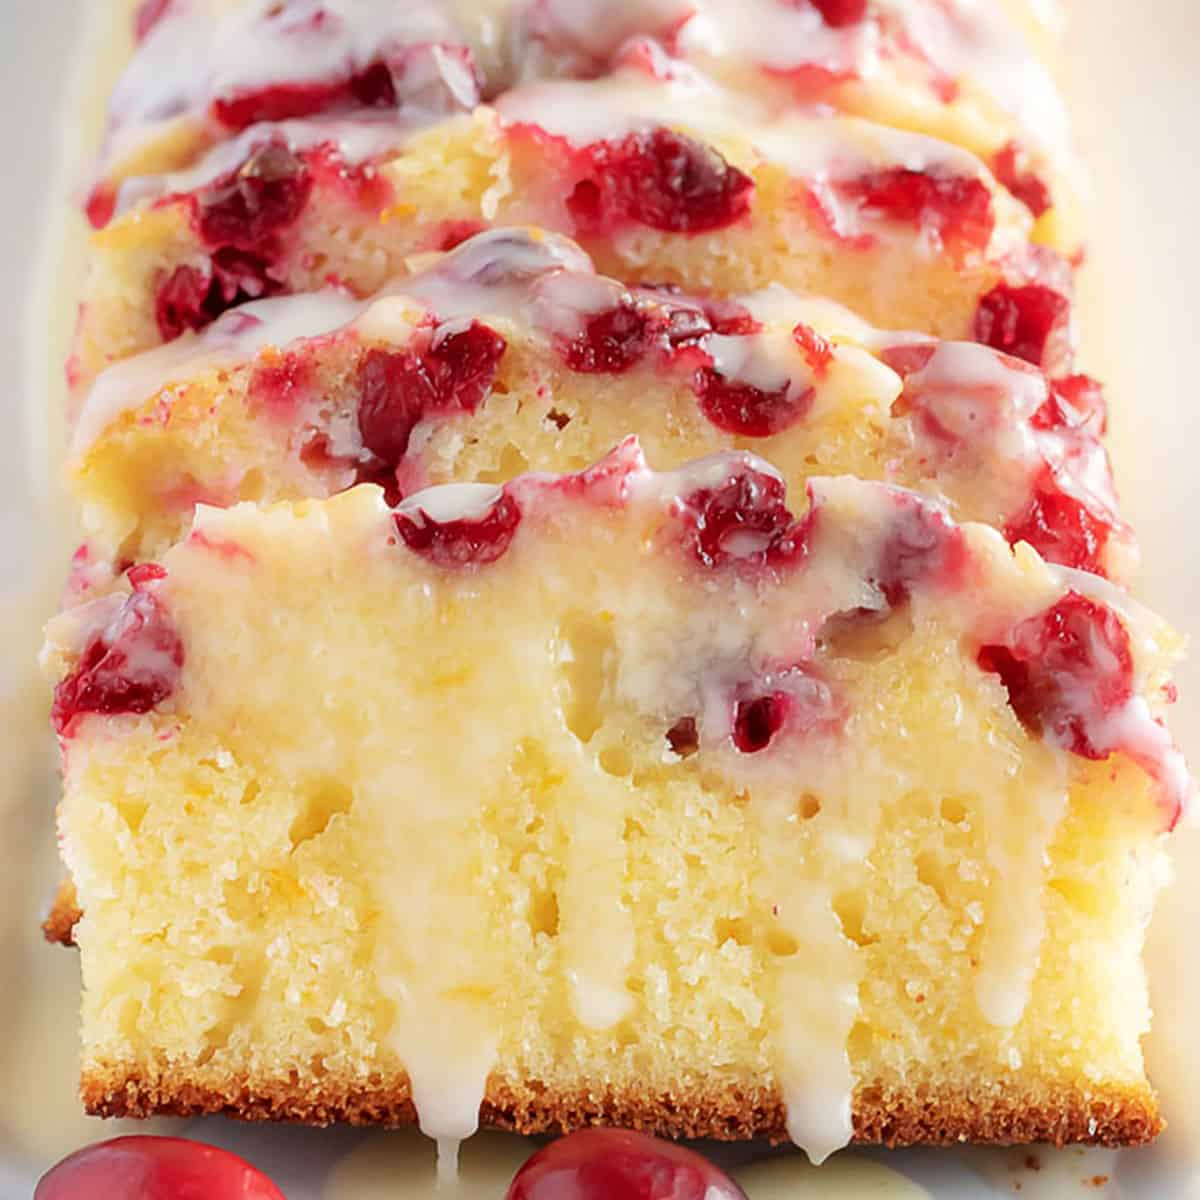 Sliced orange cranberry bread with glaze.